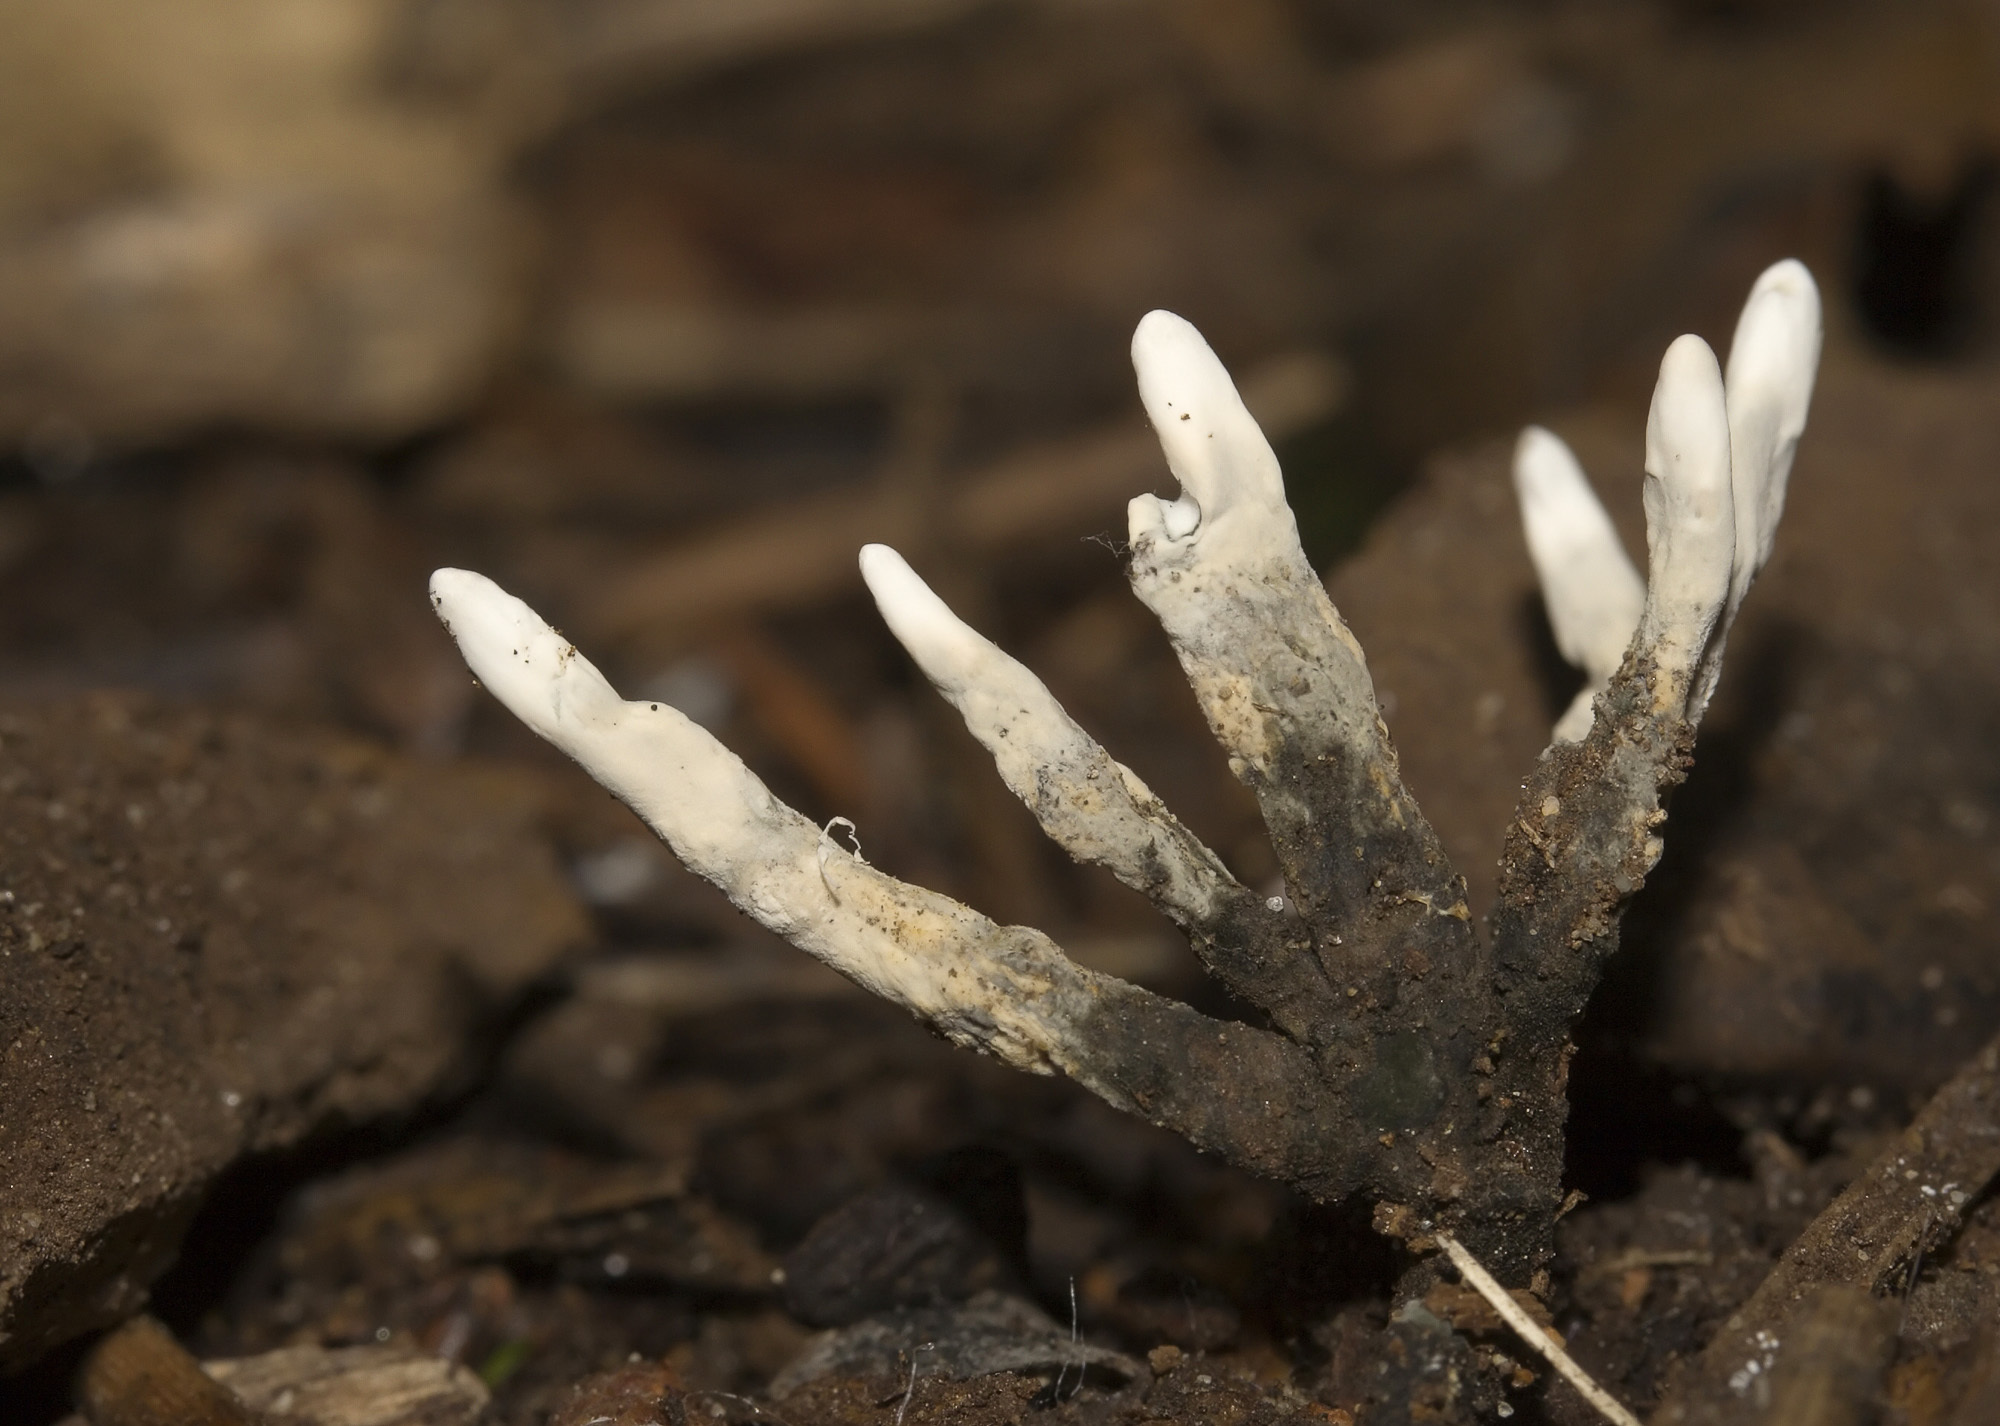 Image of Candle-snuff Fungus